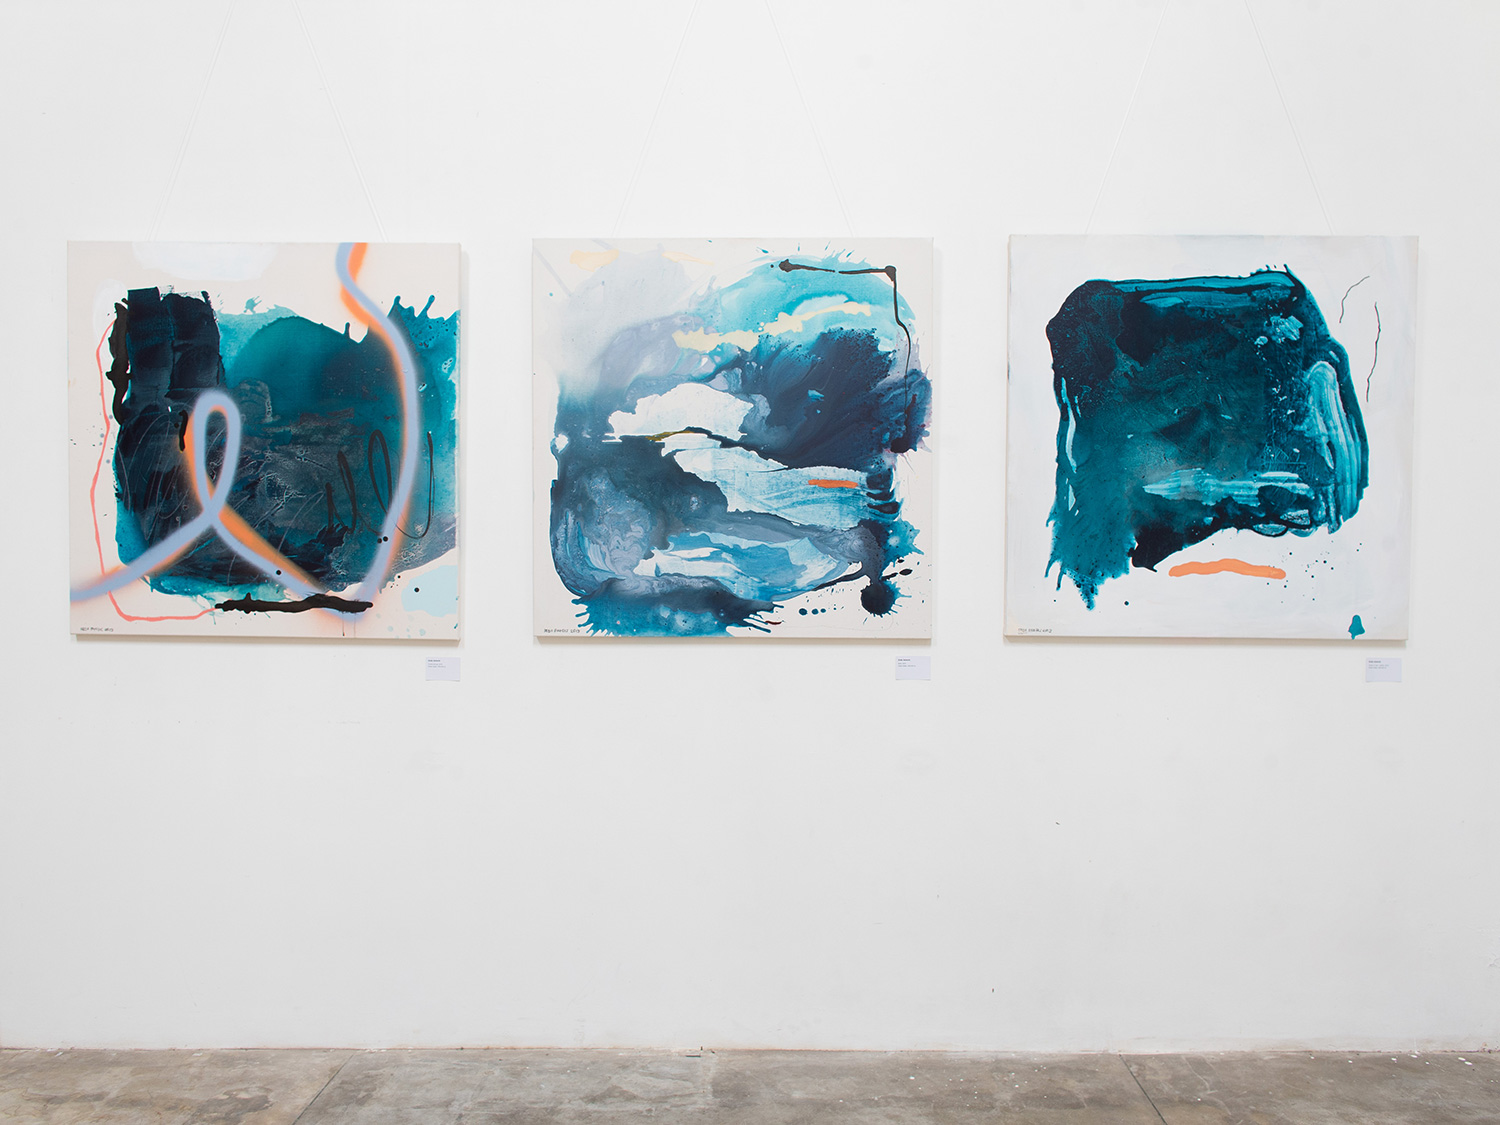 Abstract paintings by abstract expressionist painter Ordo Amoris during exhibition called wu-wei in Bali